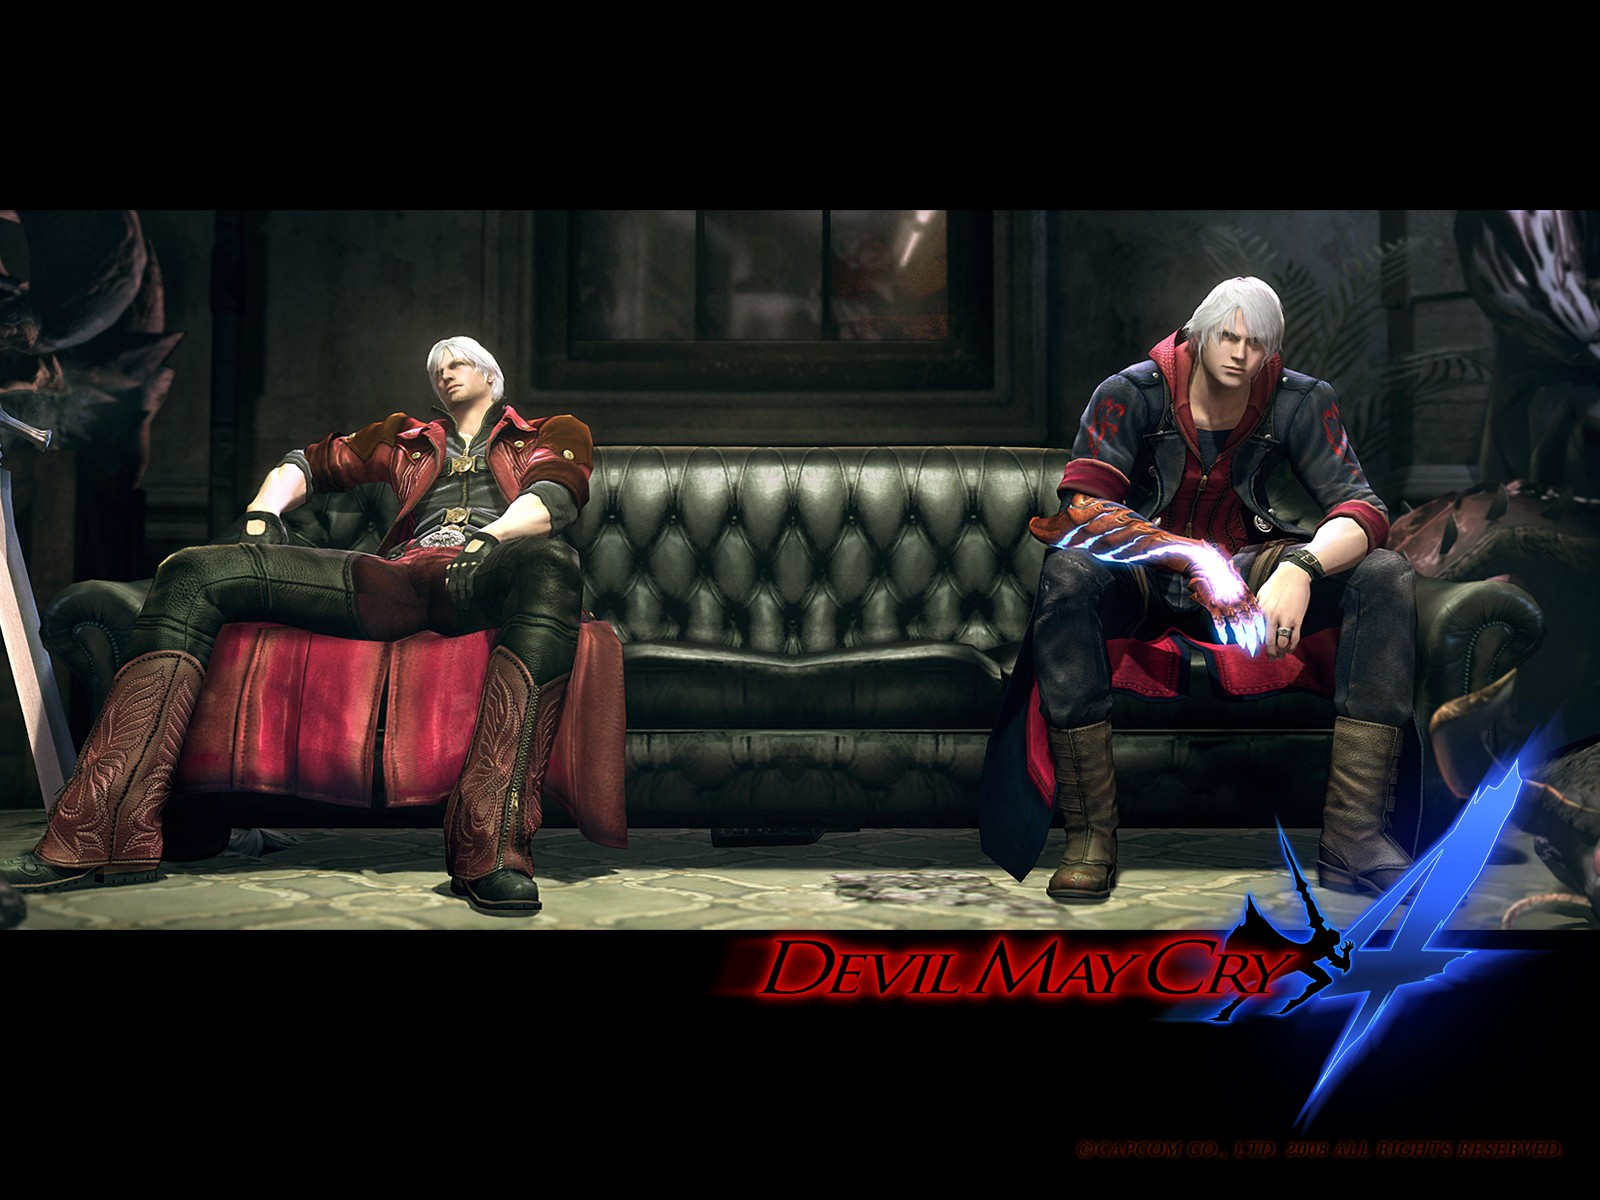 Jogo PC   Devil May Cry 4   RELOADED   [Feh]   The Anony Bay   O 1600x1200